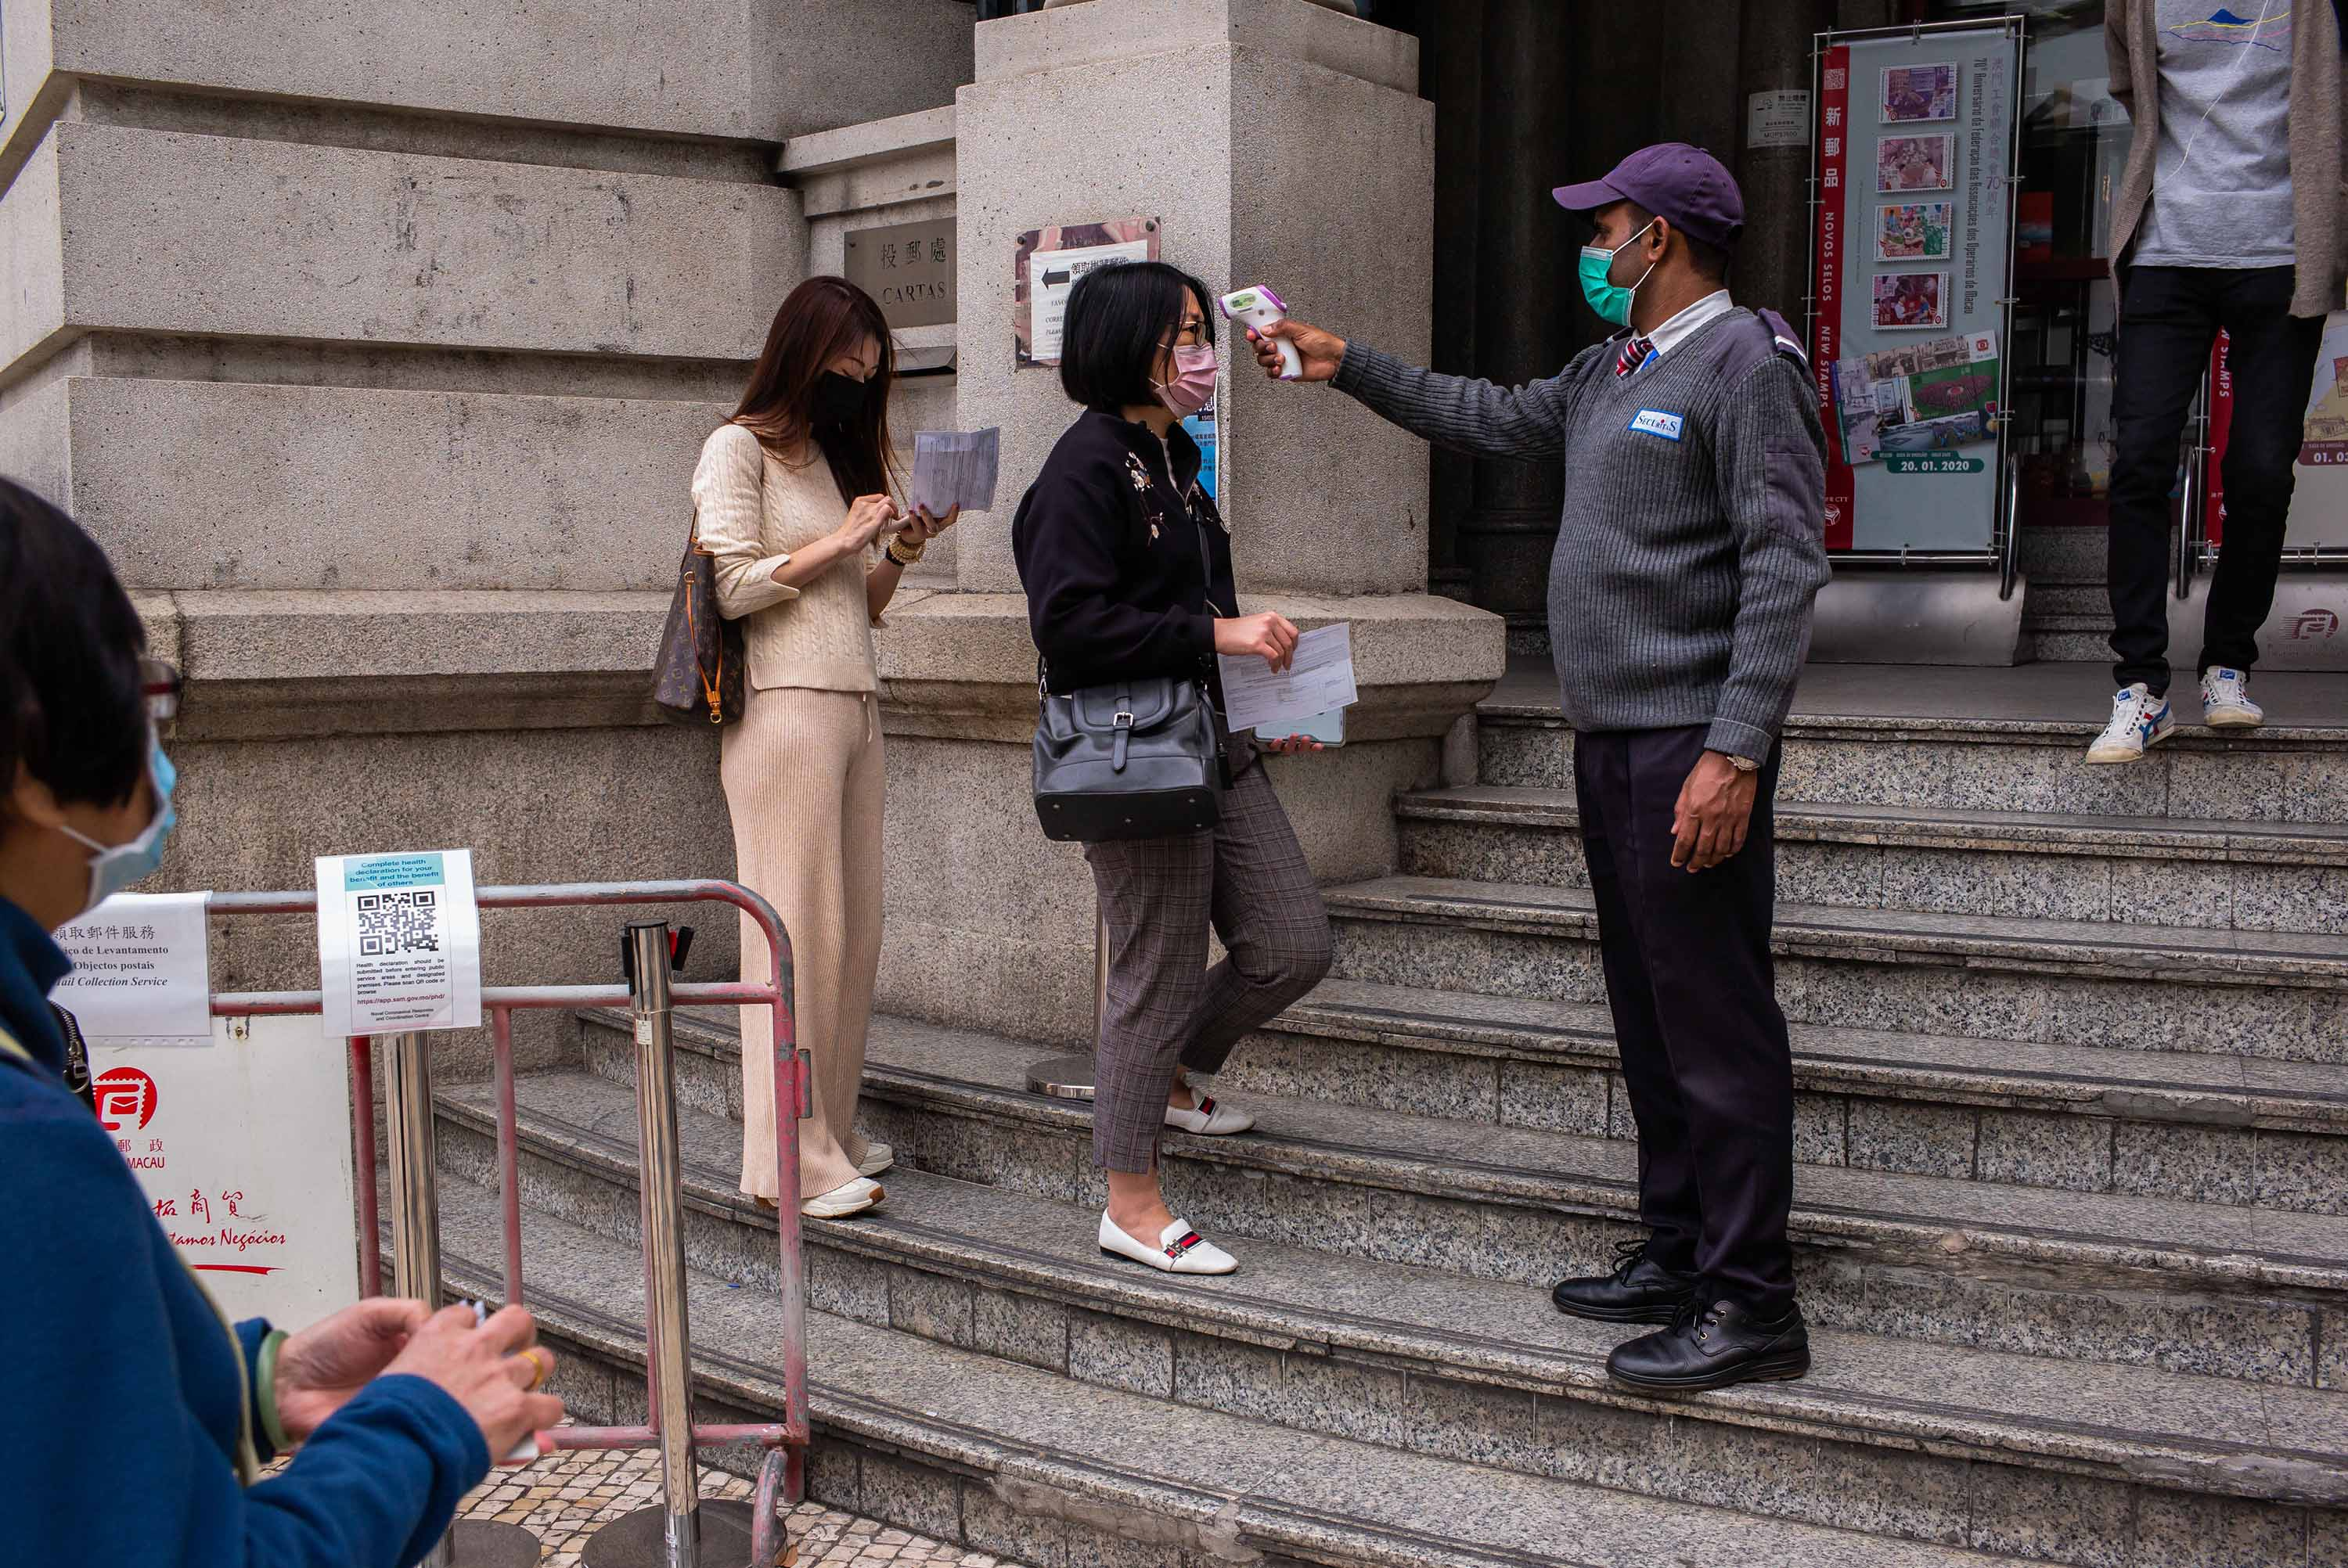 An official checks the temperature of visitors before they enter a government office in Macao on March 3.